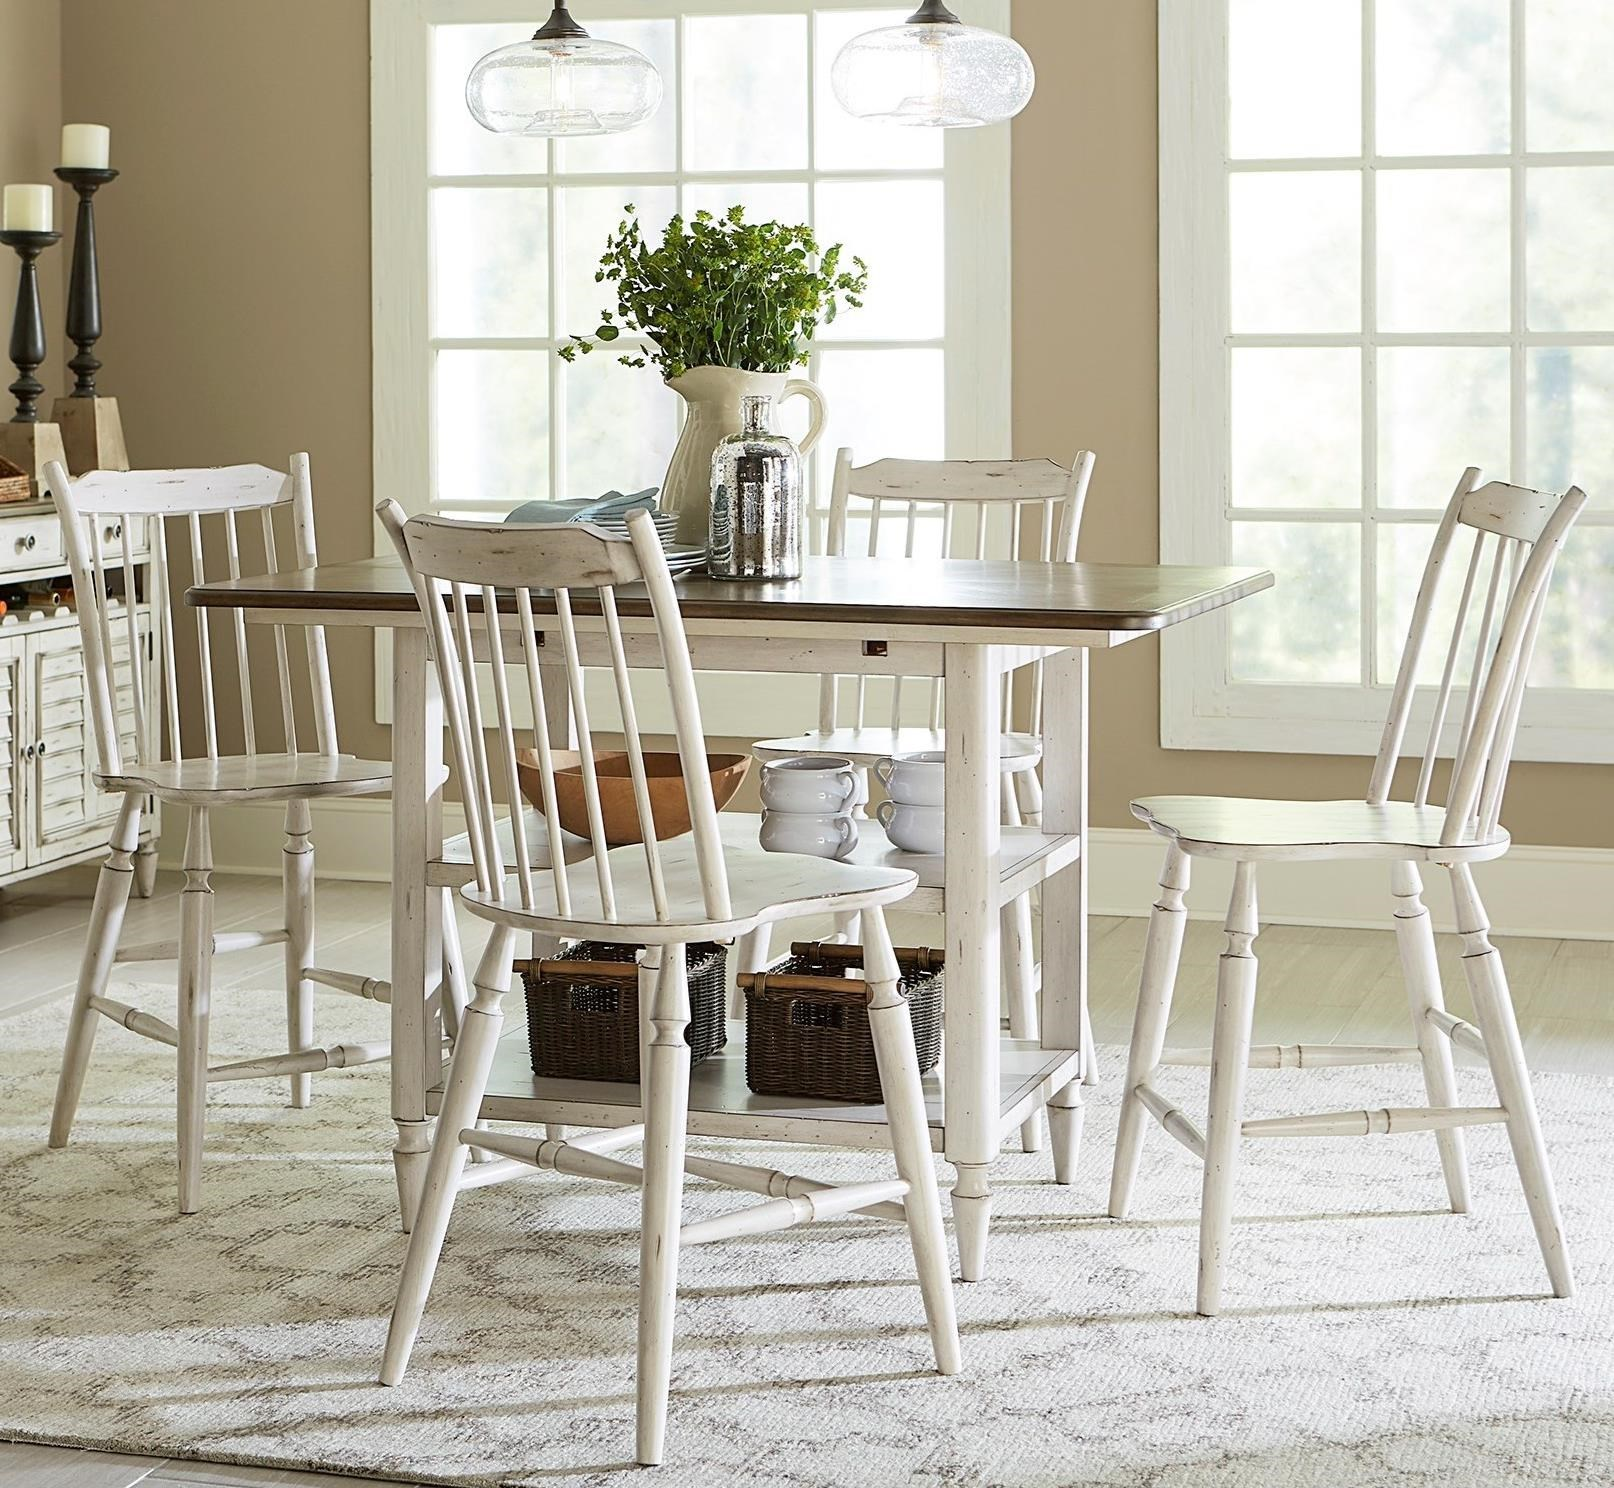 Liberty Furniture Oak Hill Dining 5 Piece Gathering Table and Counter Height Chair Set  sc 1 st  Royal Furniture & Liberty Furniture Oak Hill Dining 5 Piece Gathering Table and ...